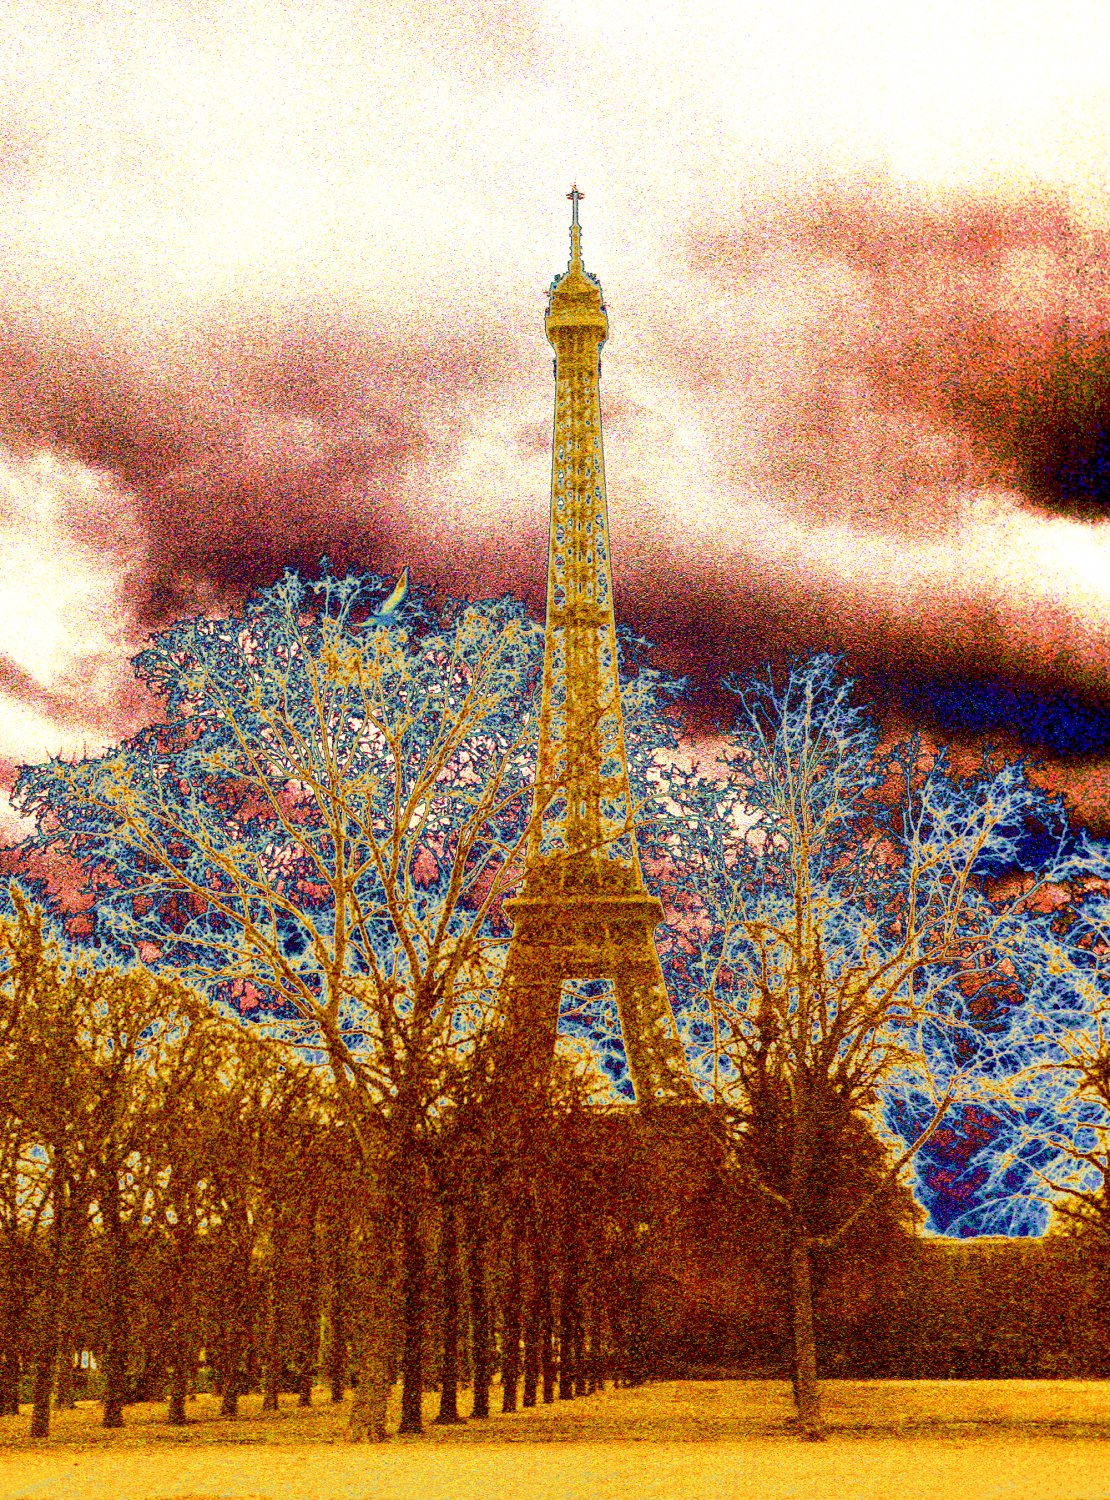 - The Eiffel tower in the manner of a nineteenth century photographer. - Paris, eiffel tower - - art  - photography - by Tony Karp